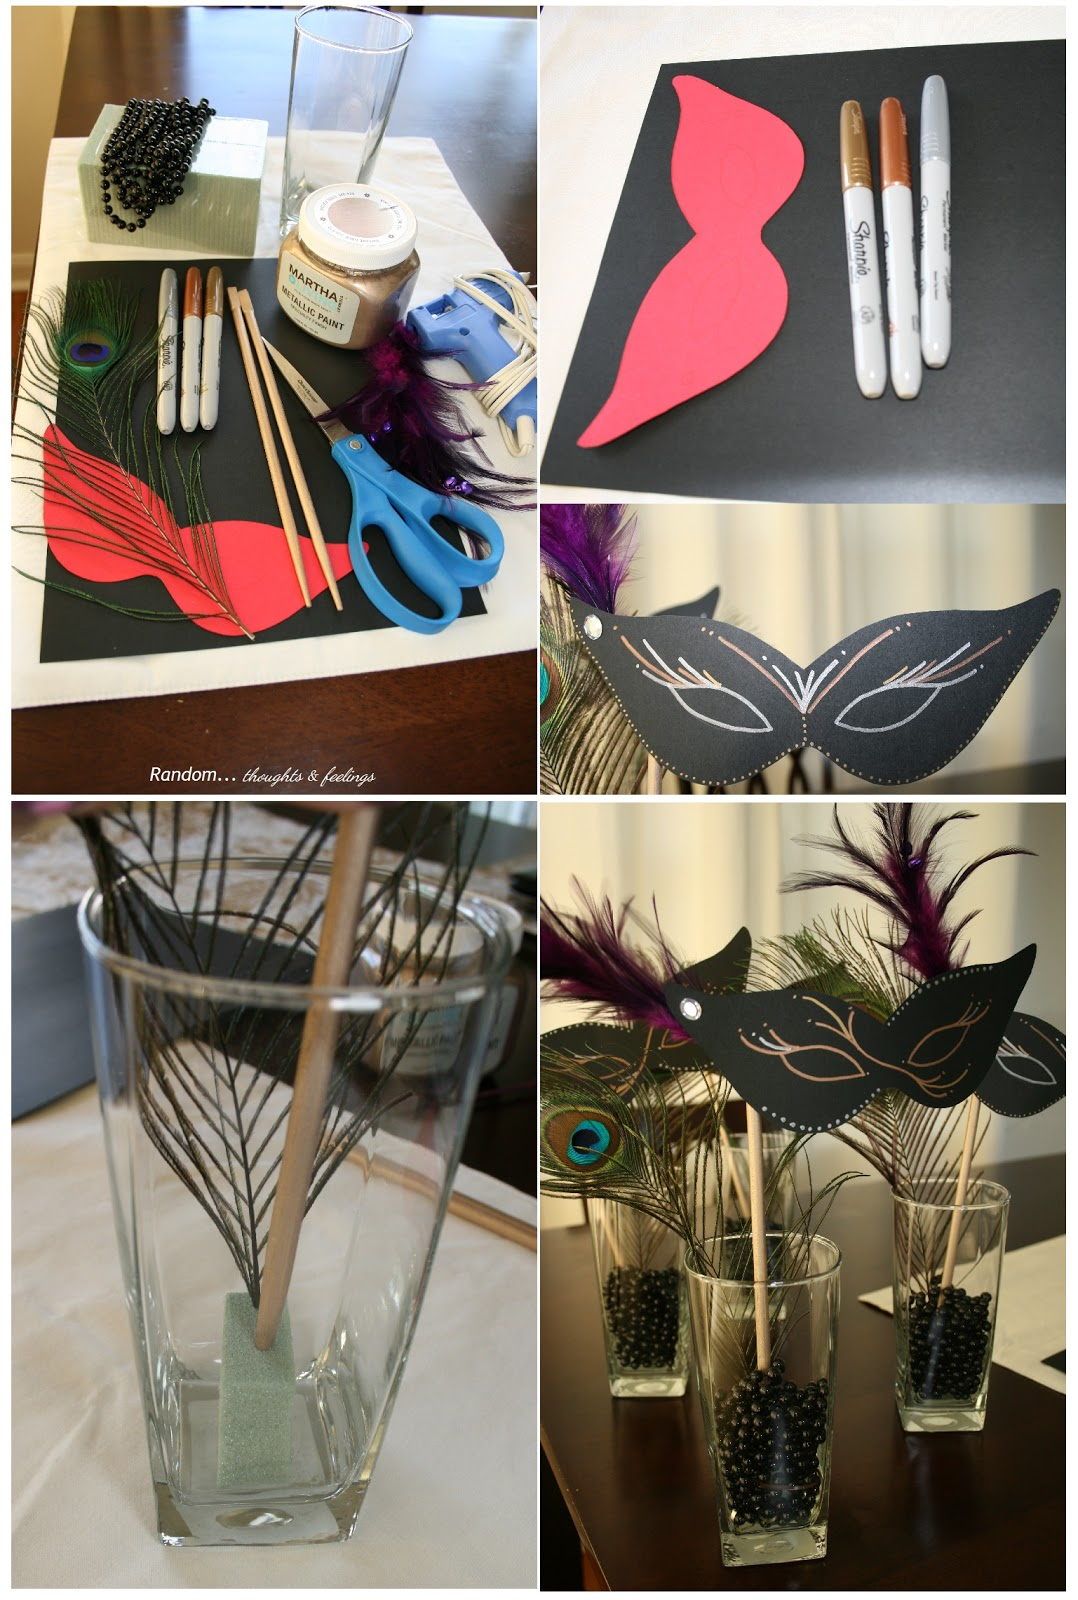 Random thoughts and feelings d i y masquerade party decor